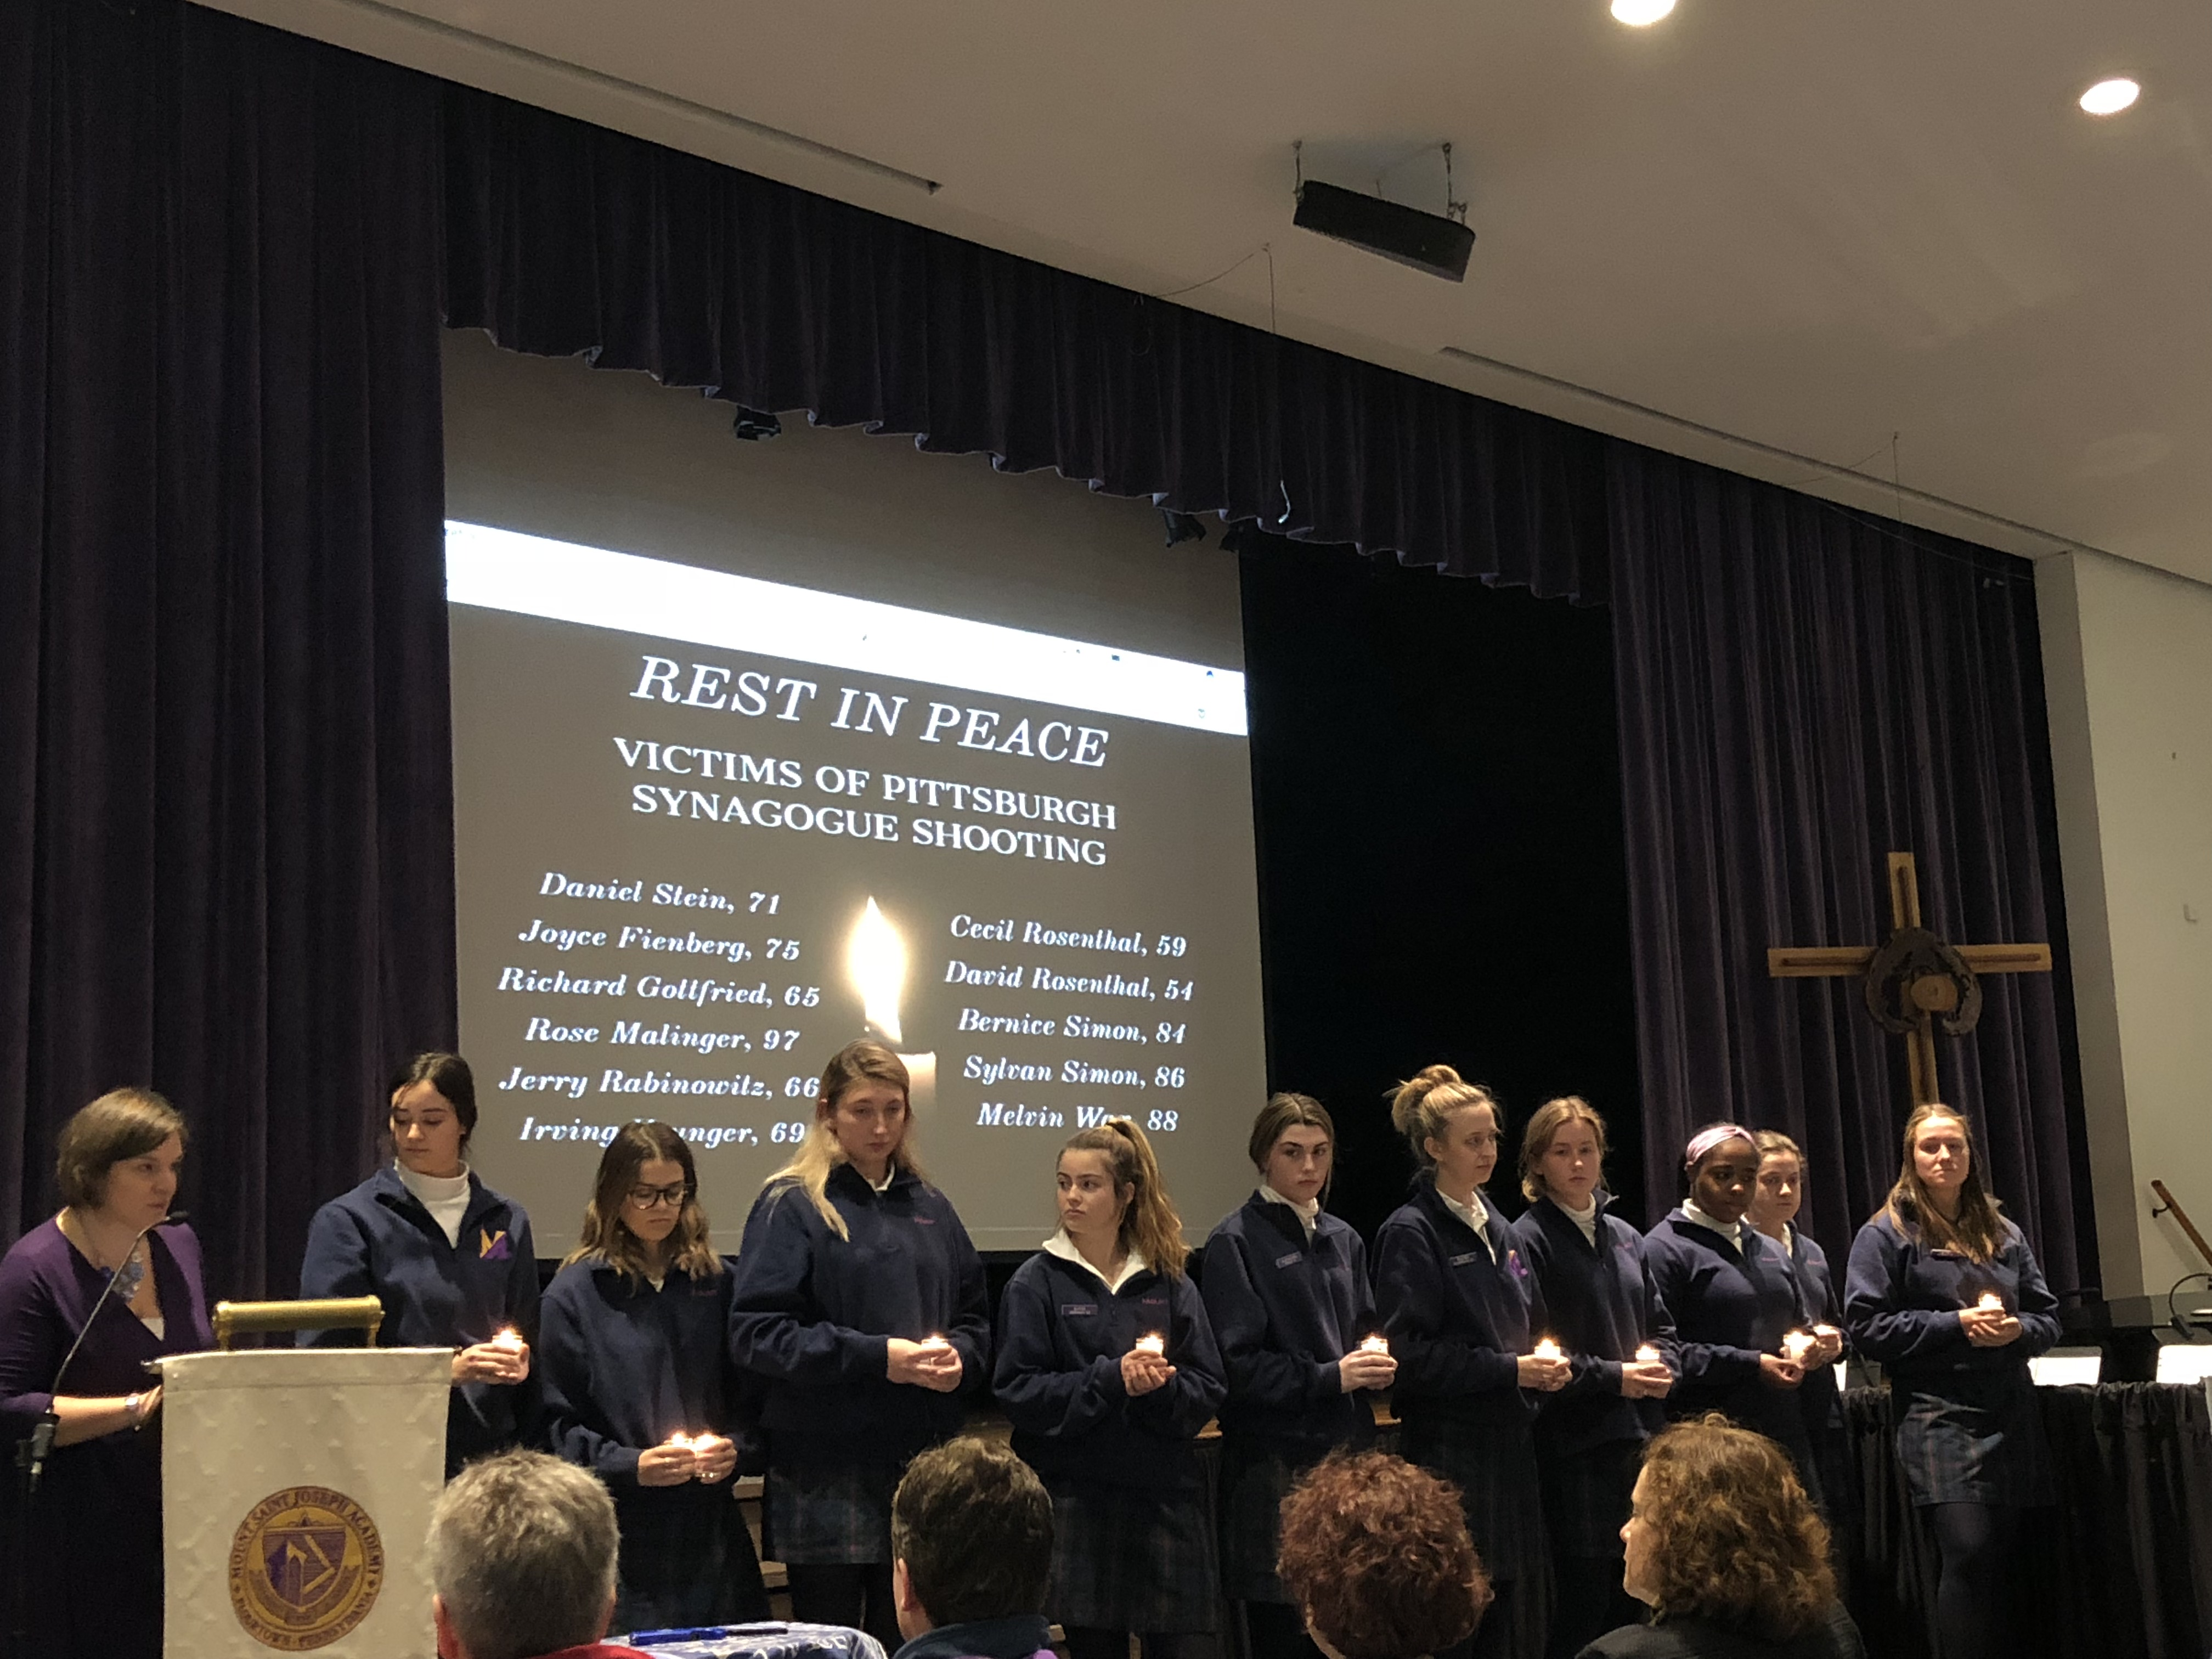 MSJA Holds Prayer Service With Members of Jewish Community in Wake of Pittsburgh Tragedy